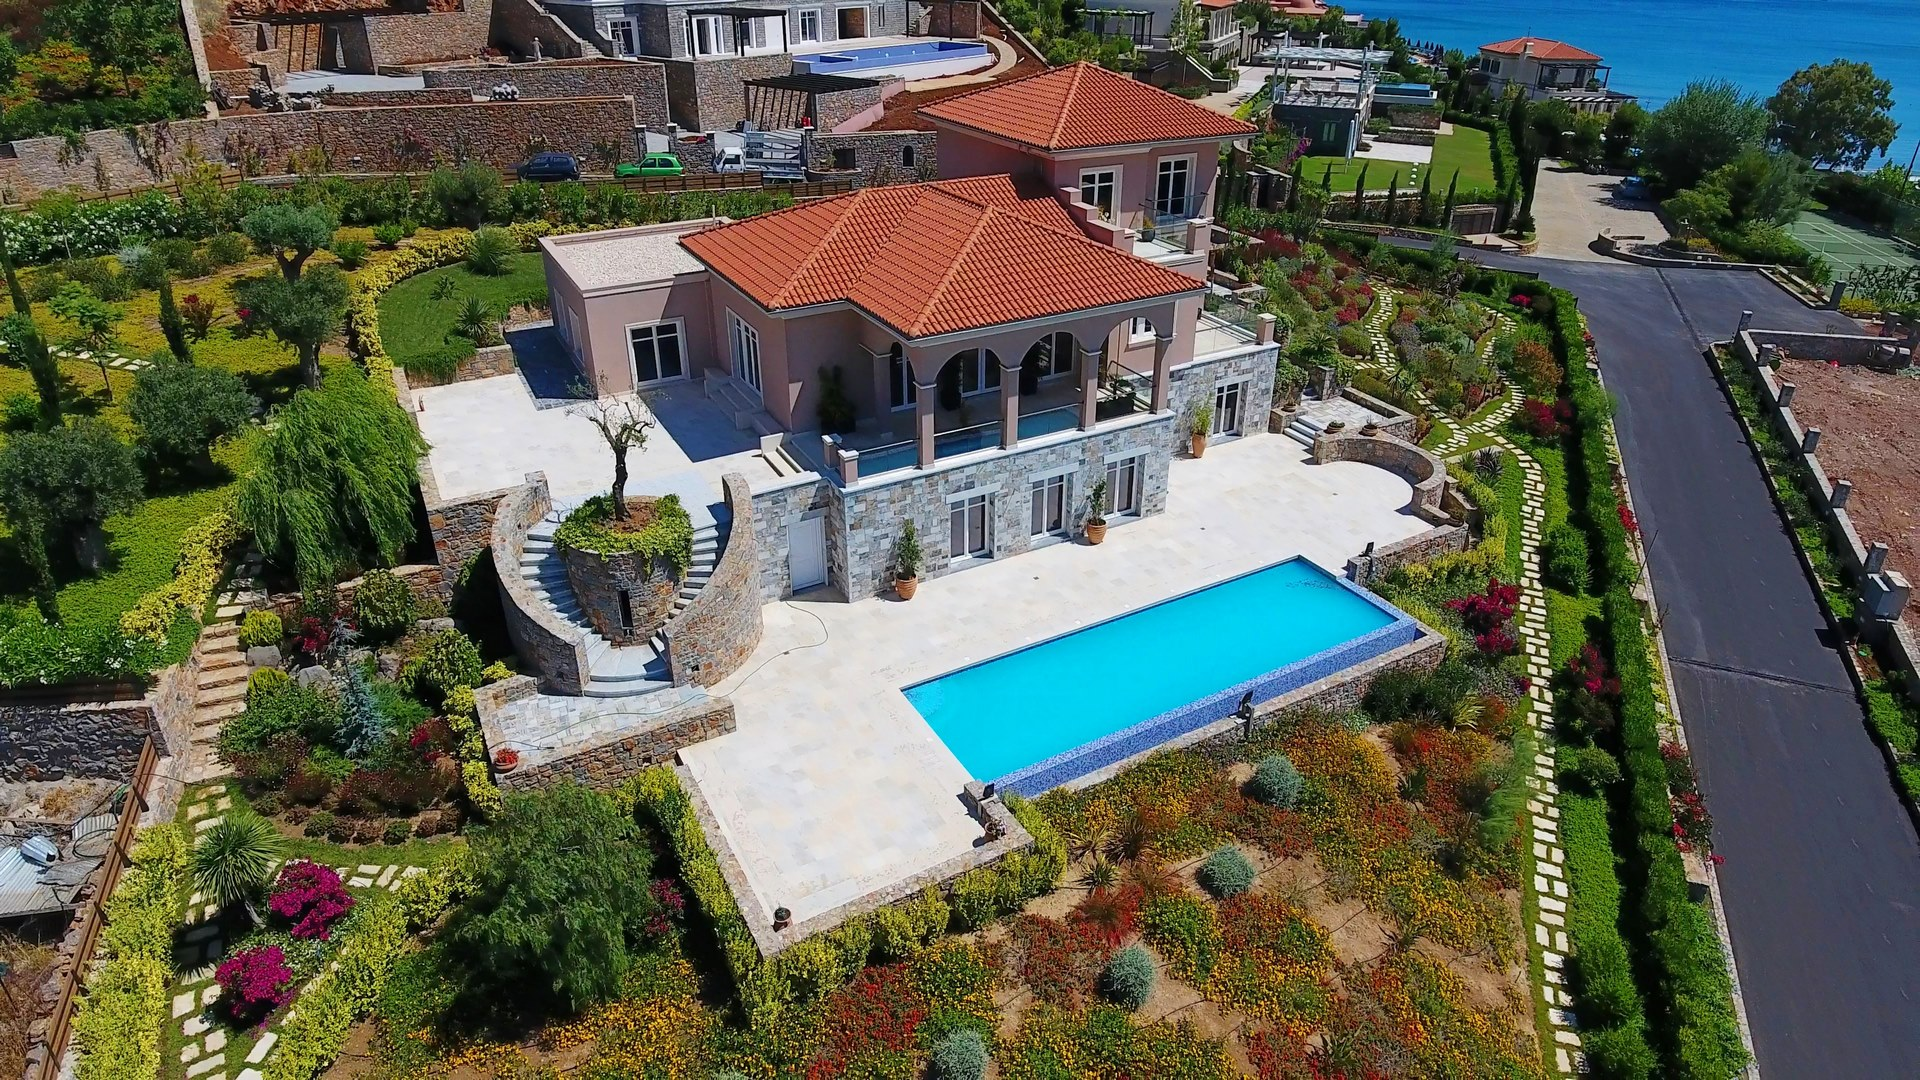 Villa on the island Crete